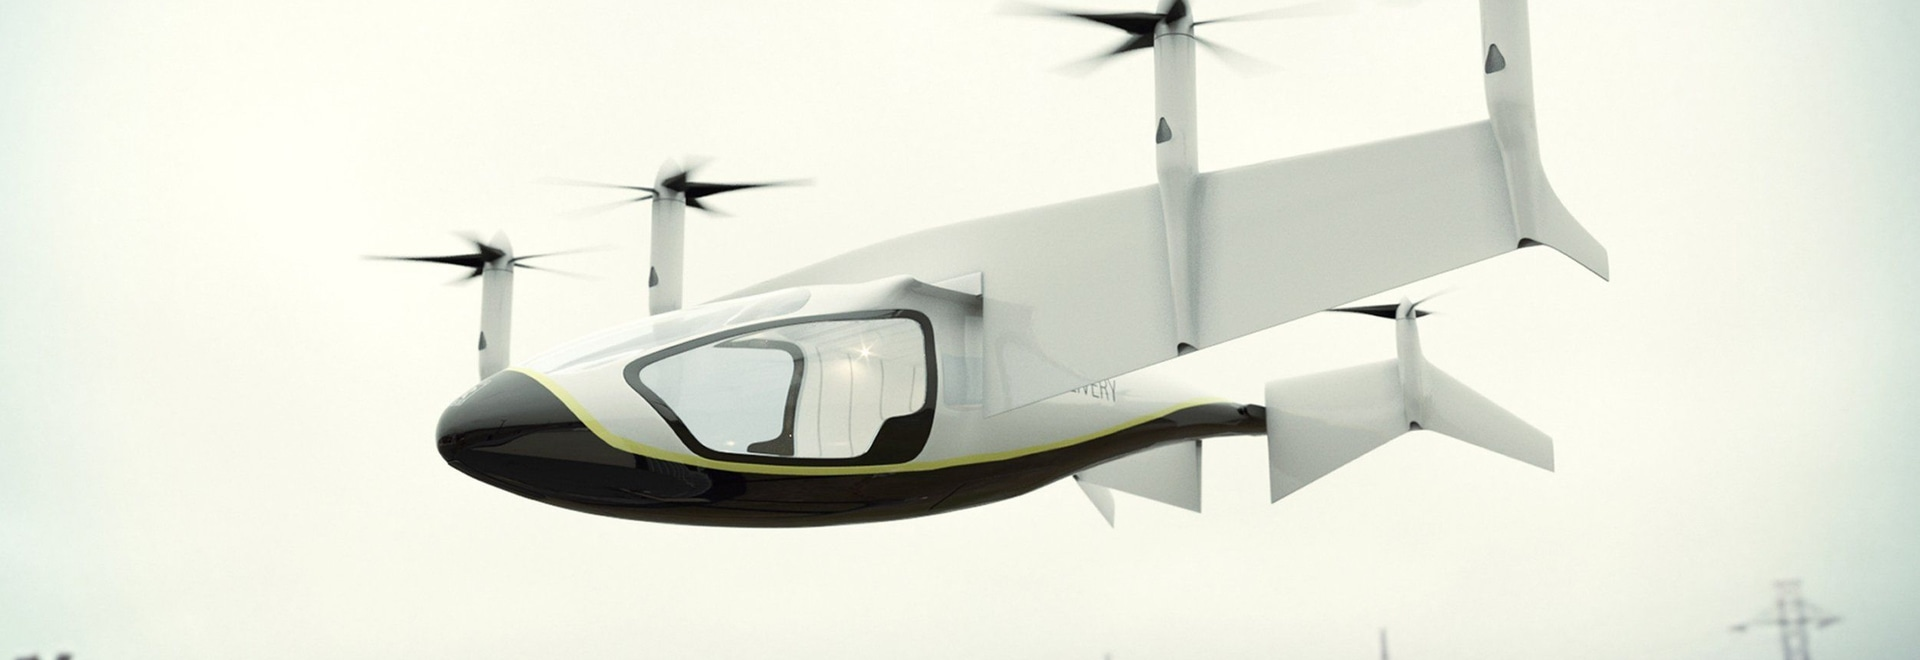 The Rolls-Royce electric hybrid EVTOL conceptual design unveiled at Farnborough 2018. Image courtesy of Rolls Royce